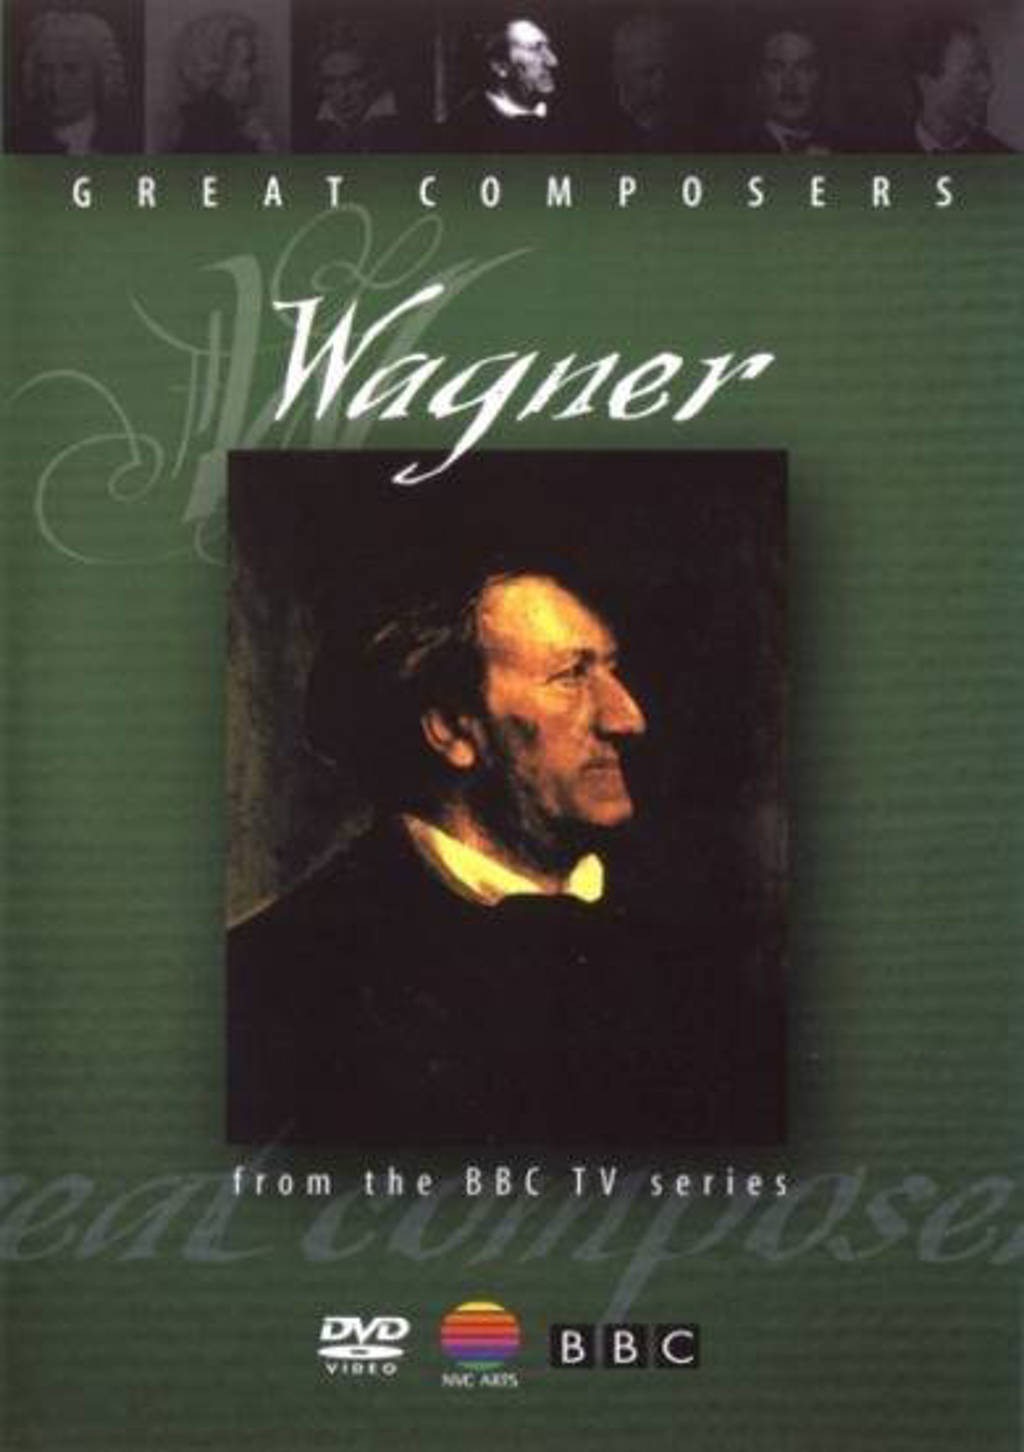 Great Composers Series - Great Composers - Wagner (DVD)